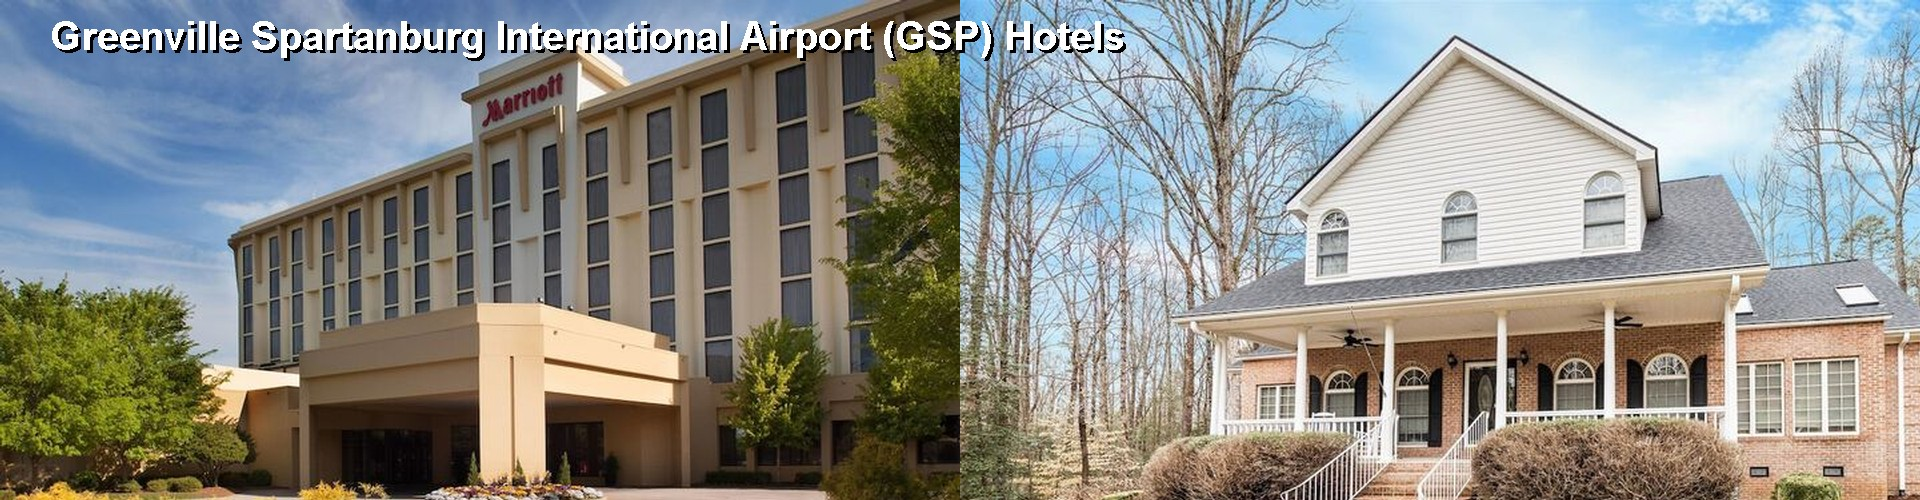 5 Best Hotels Near Greenville Spartanburg International Airport Gsp